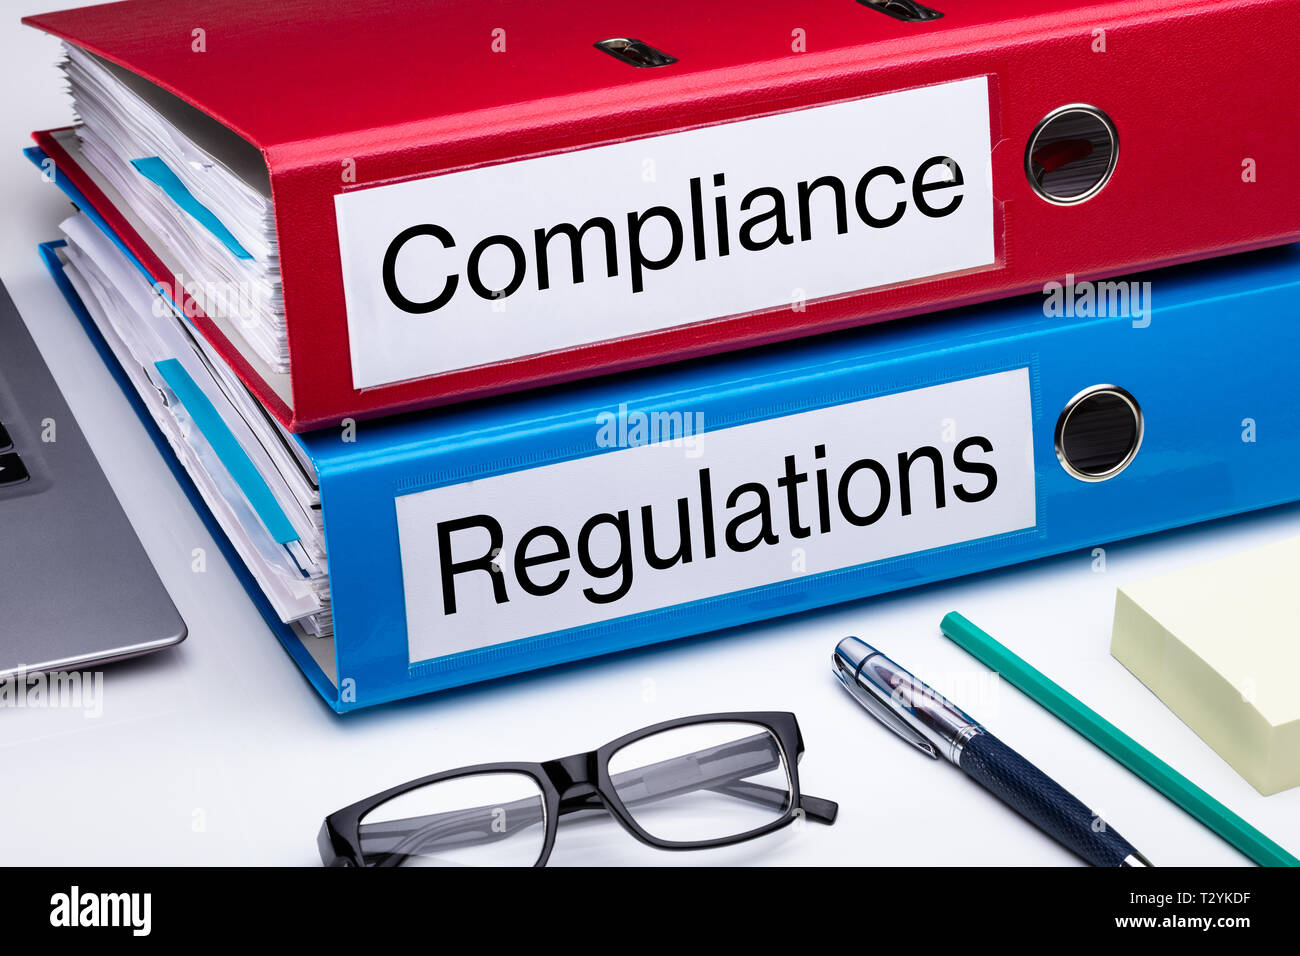 Compliance And Regulation With Office Supplies Over Business Desk - Stock Image